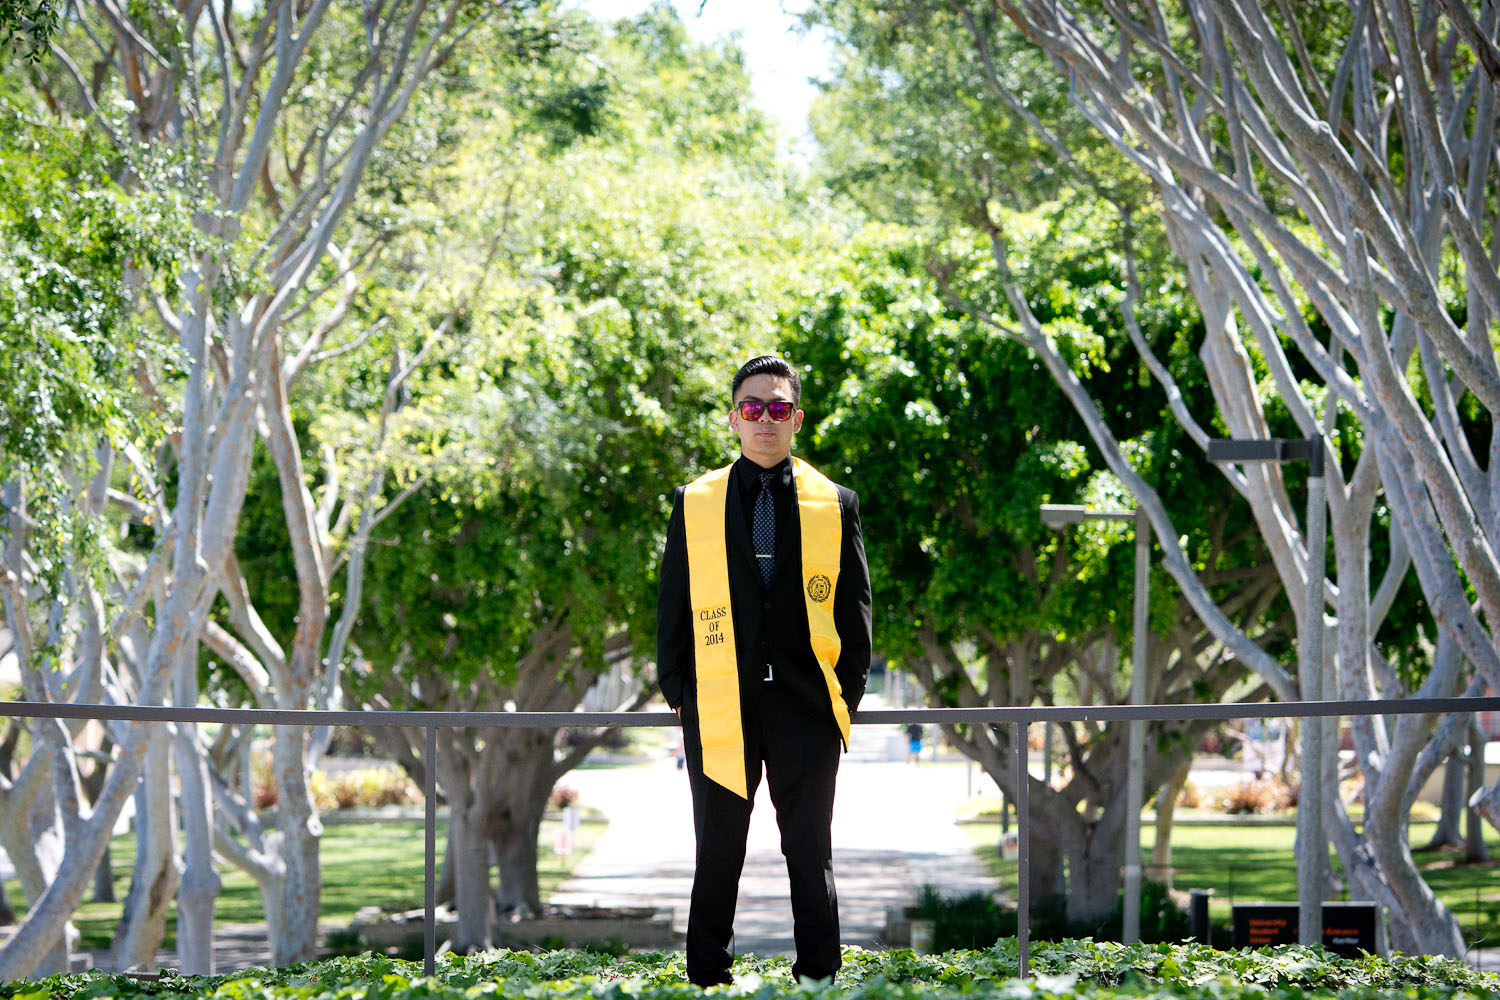 Bryan-Miraflor-Photography-Tejero-Grad-Portraits-Long-Beach-CSULB-0010.jpg